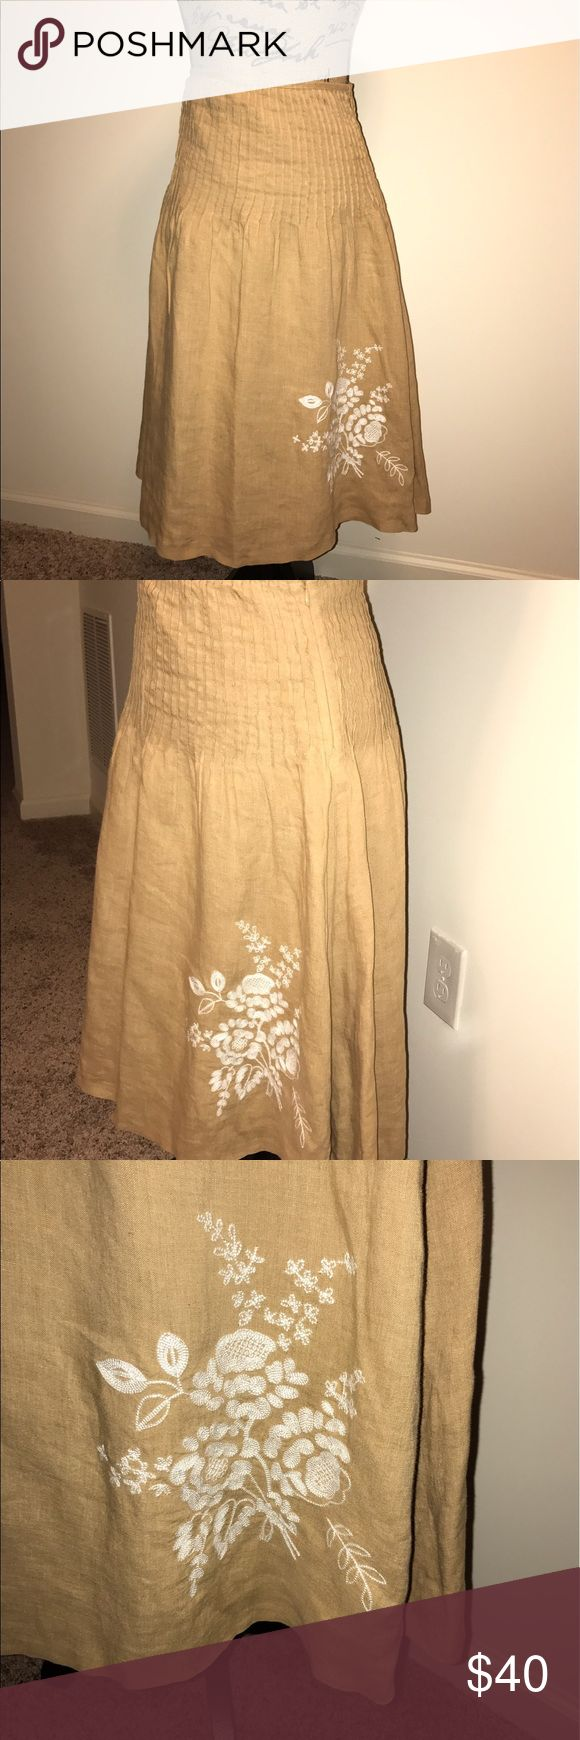 Tommy Hilfiger Linen Skirt. Beautiful tan Tommy Hilfiger skirt with classic white floral embroidery design detail. Tommy Hilfiger Skirts Midi